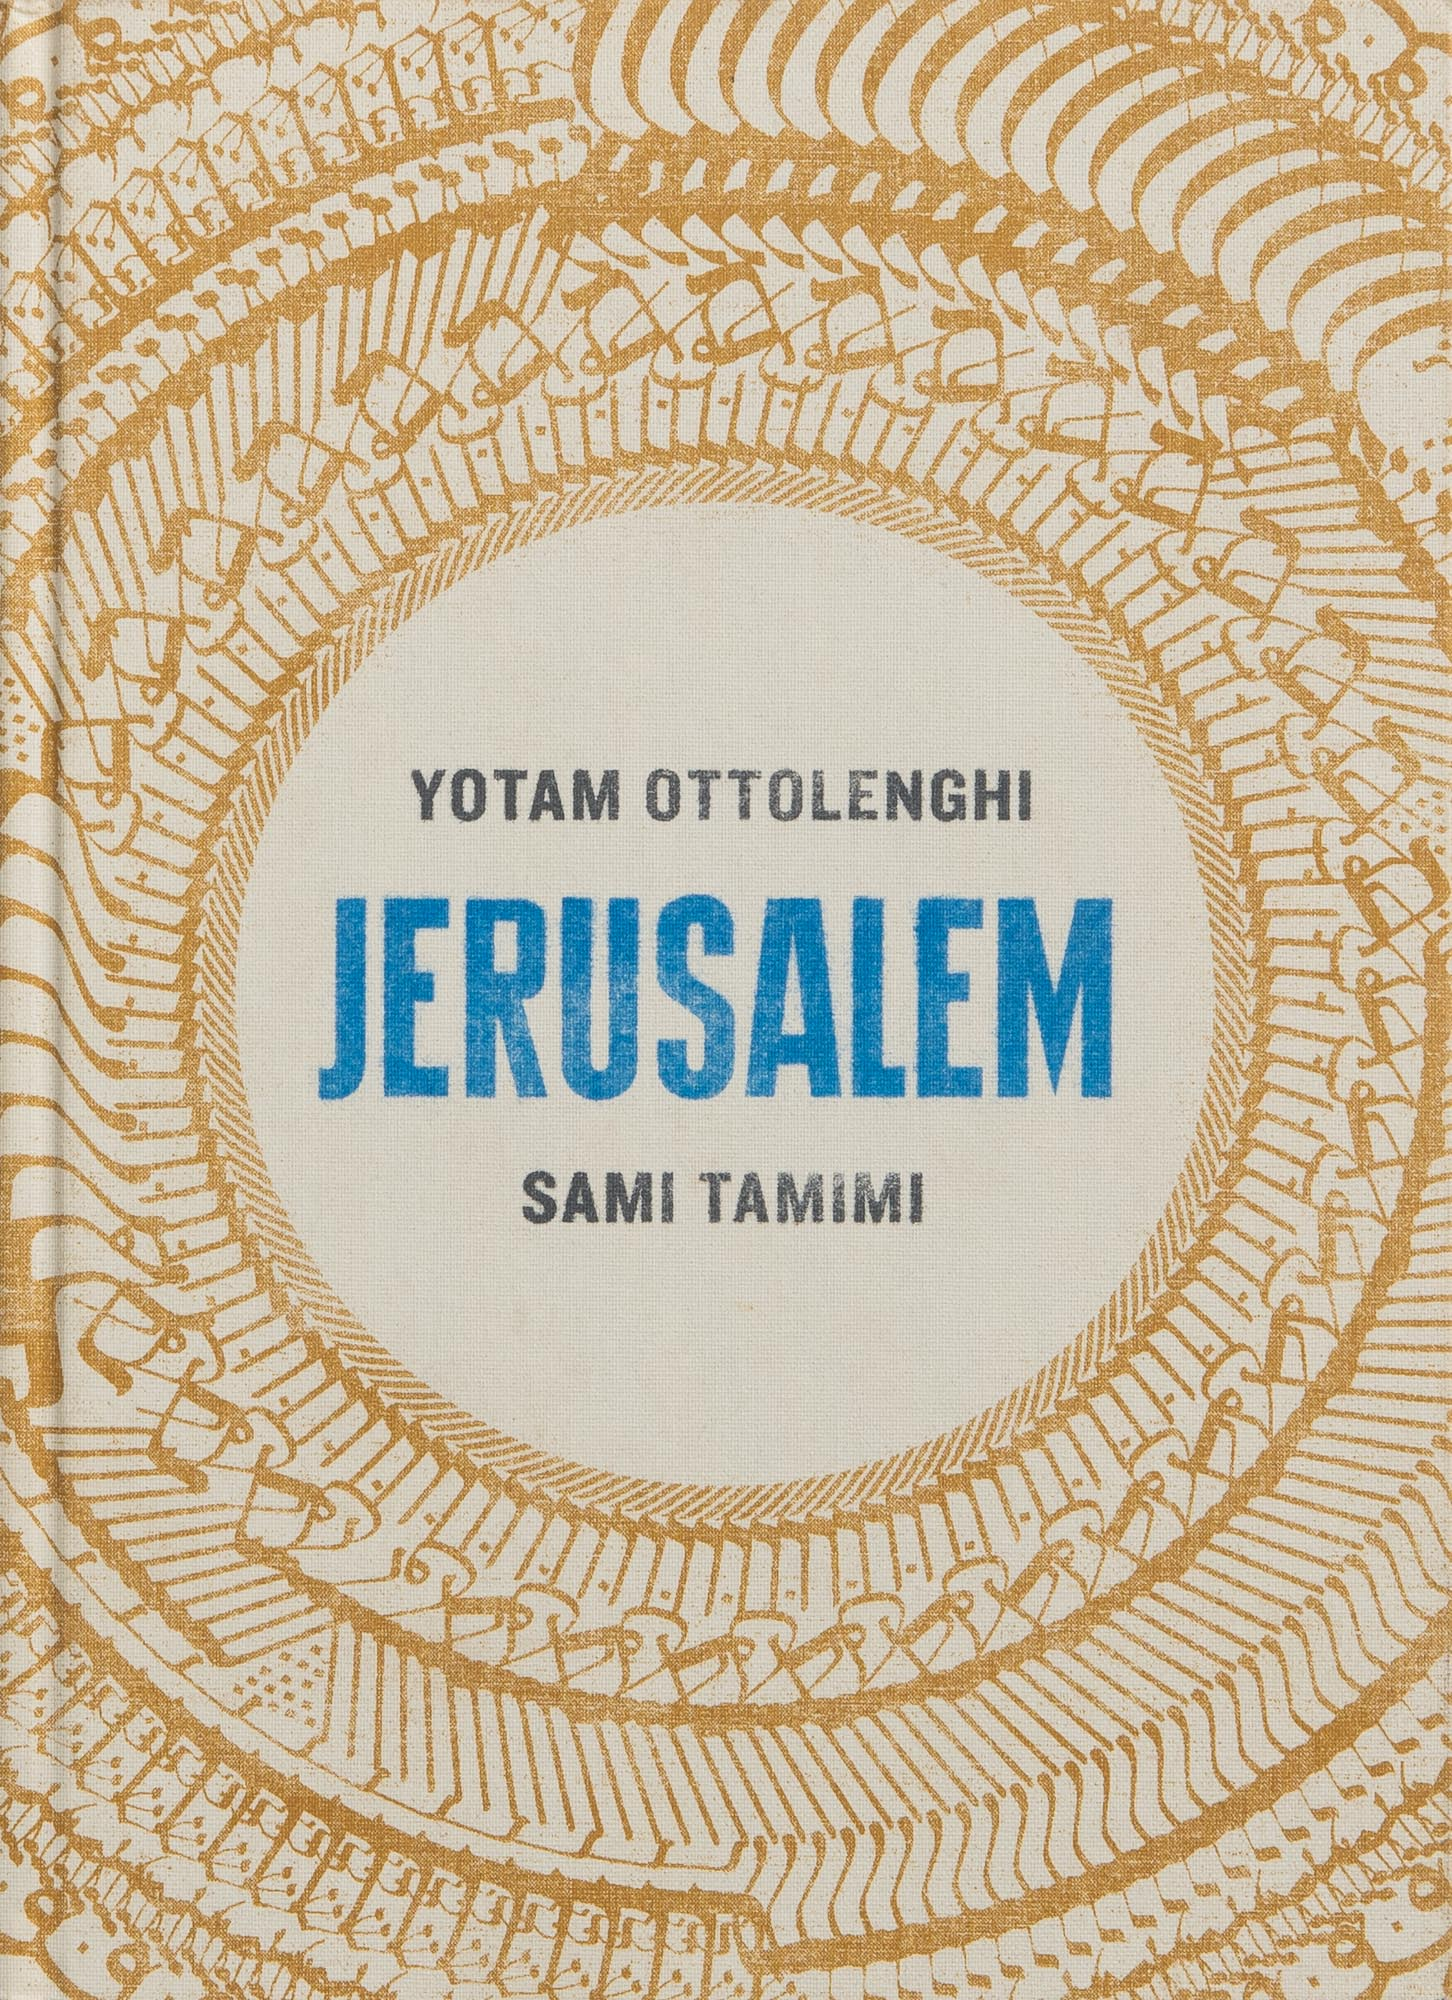 The cover of the cookbook Yotam Ottolenghi and Sami Tamimi